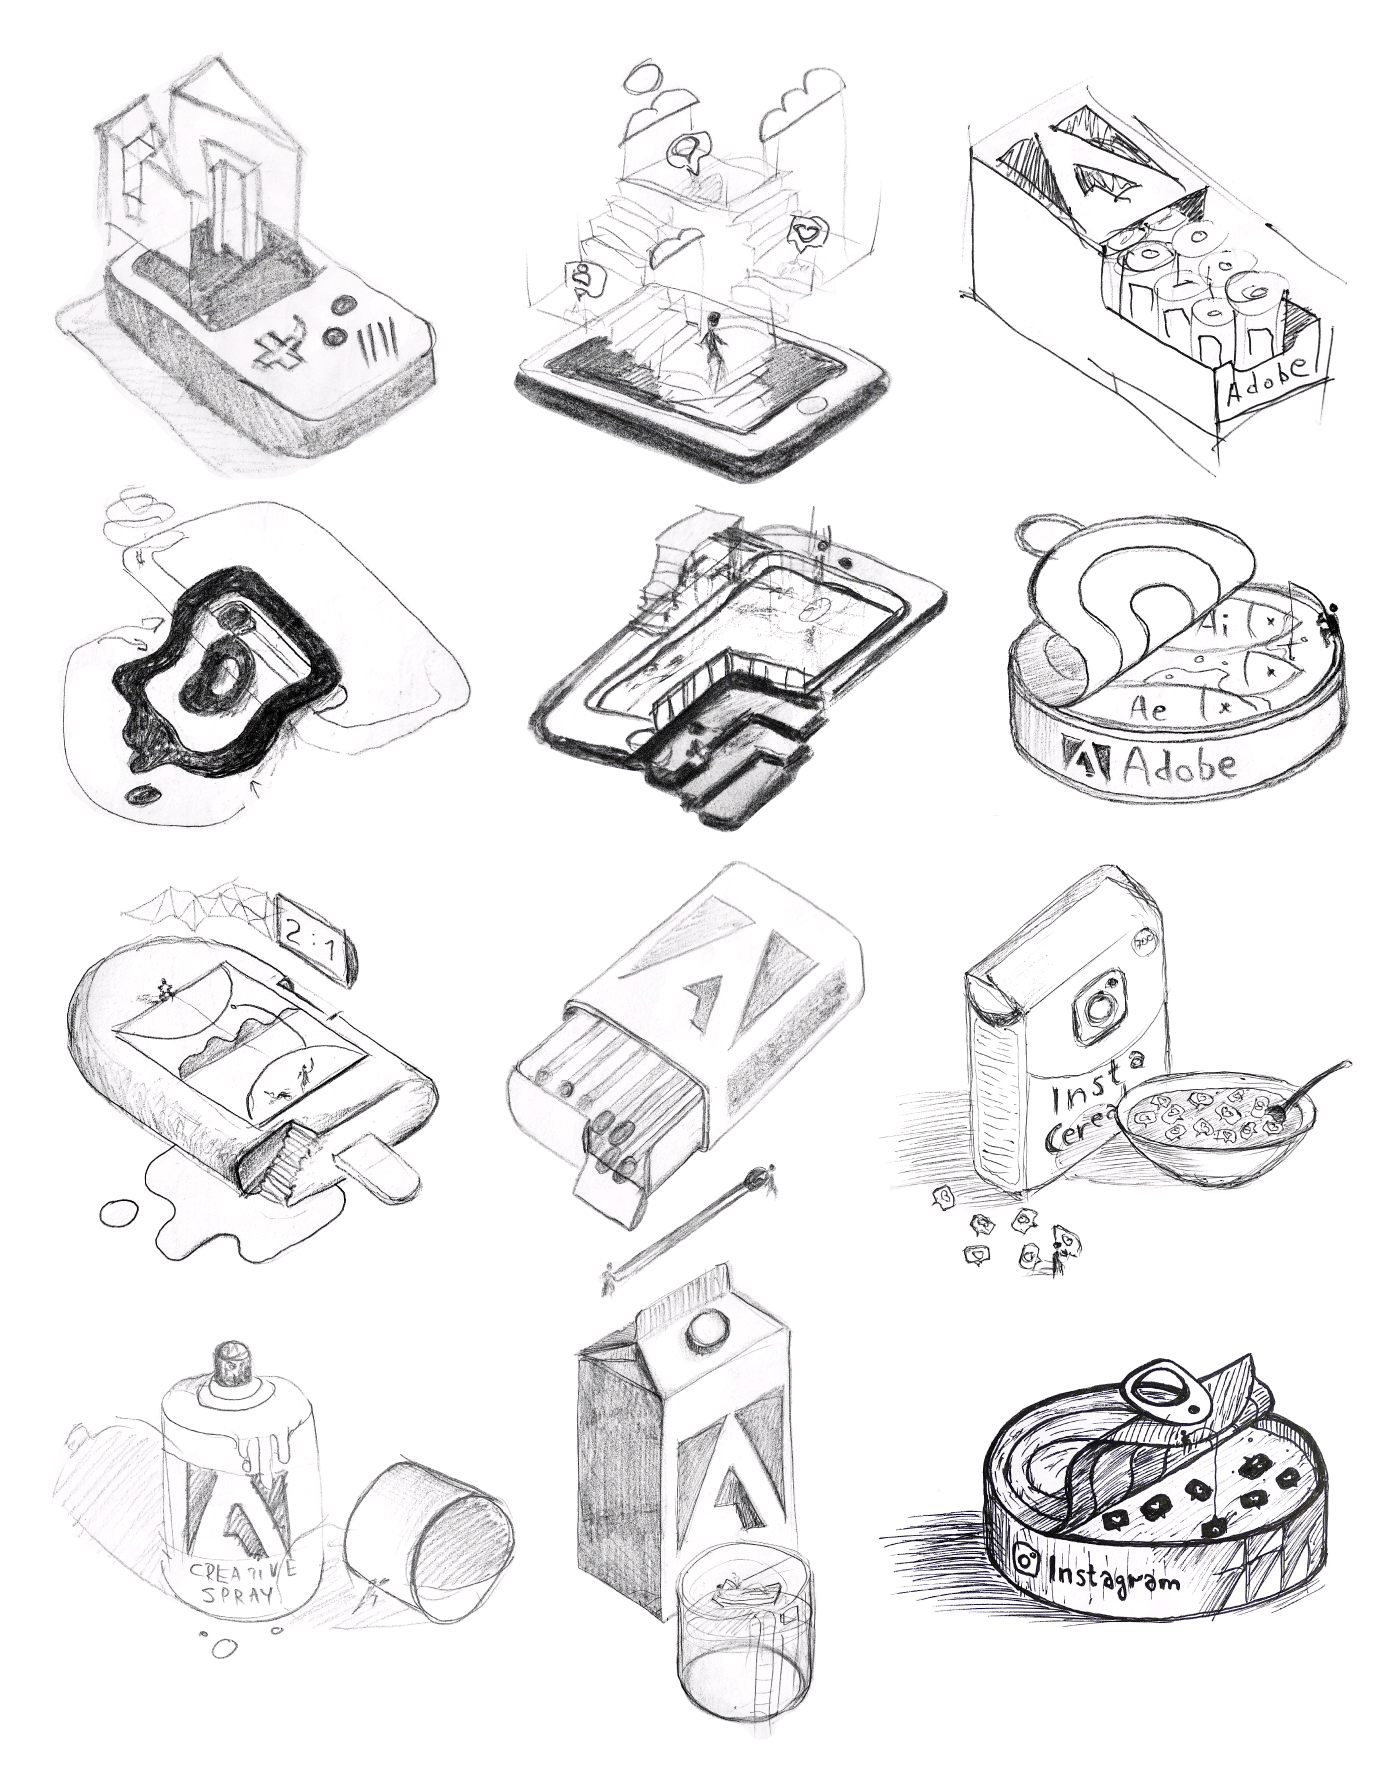 12 sketches of ideas which transformed into 12 independent eye pleasing design pieces